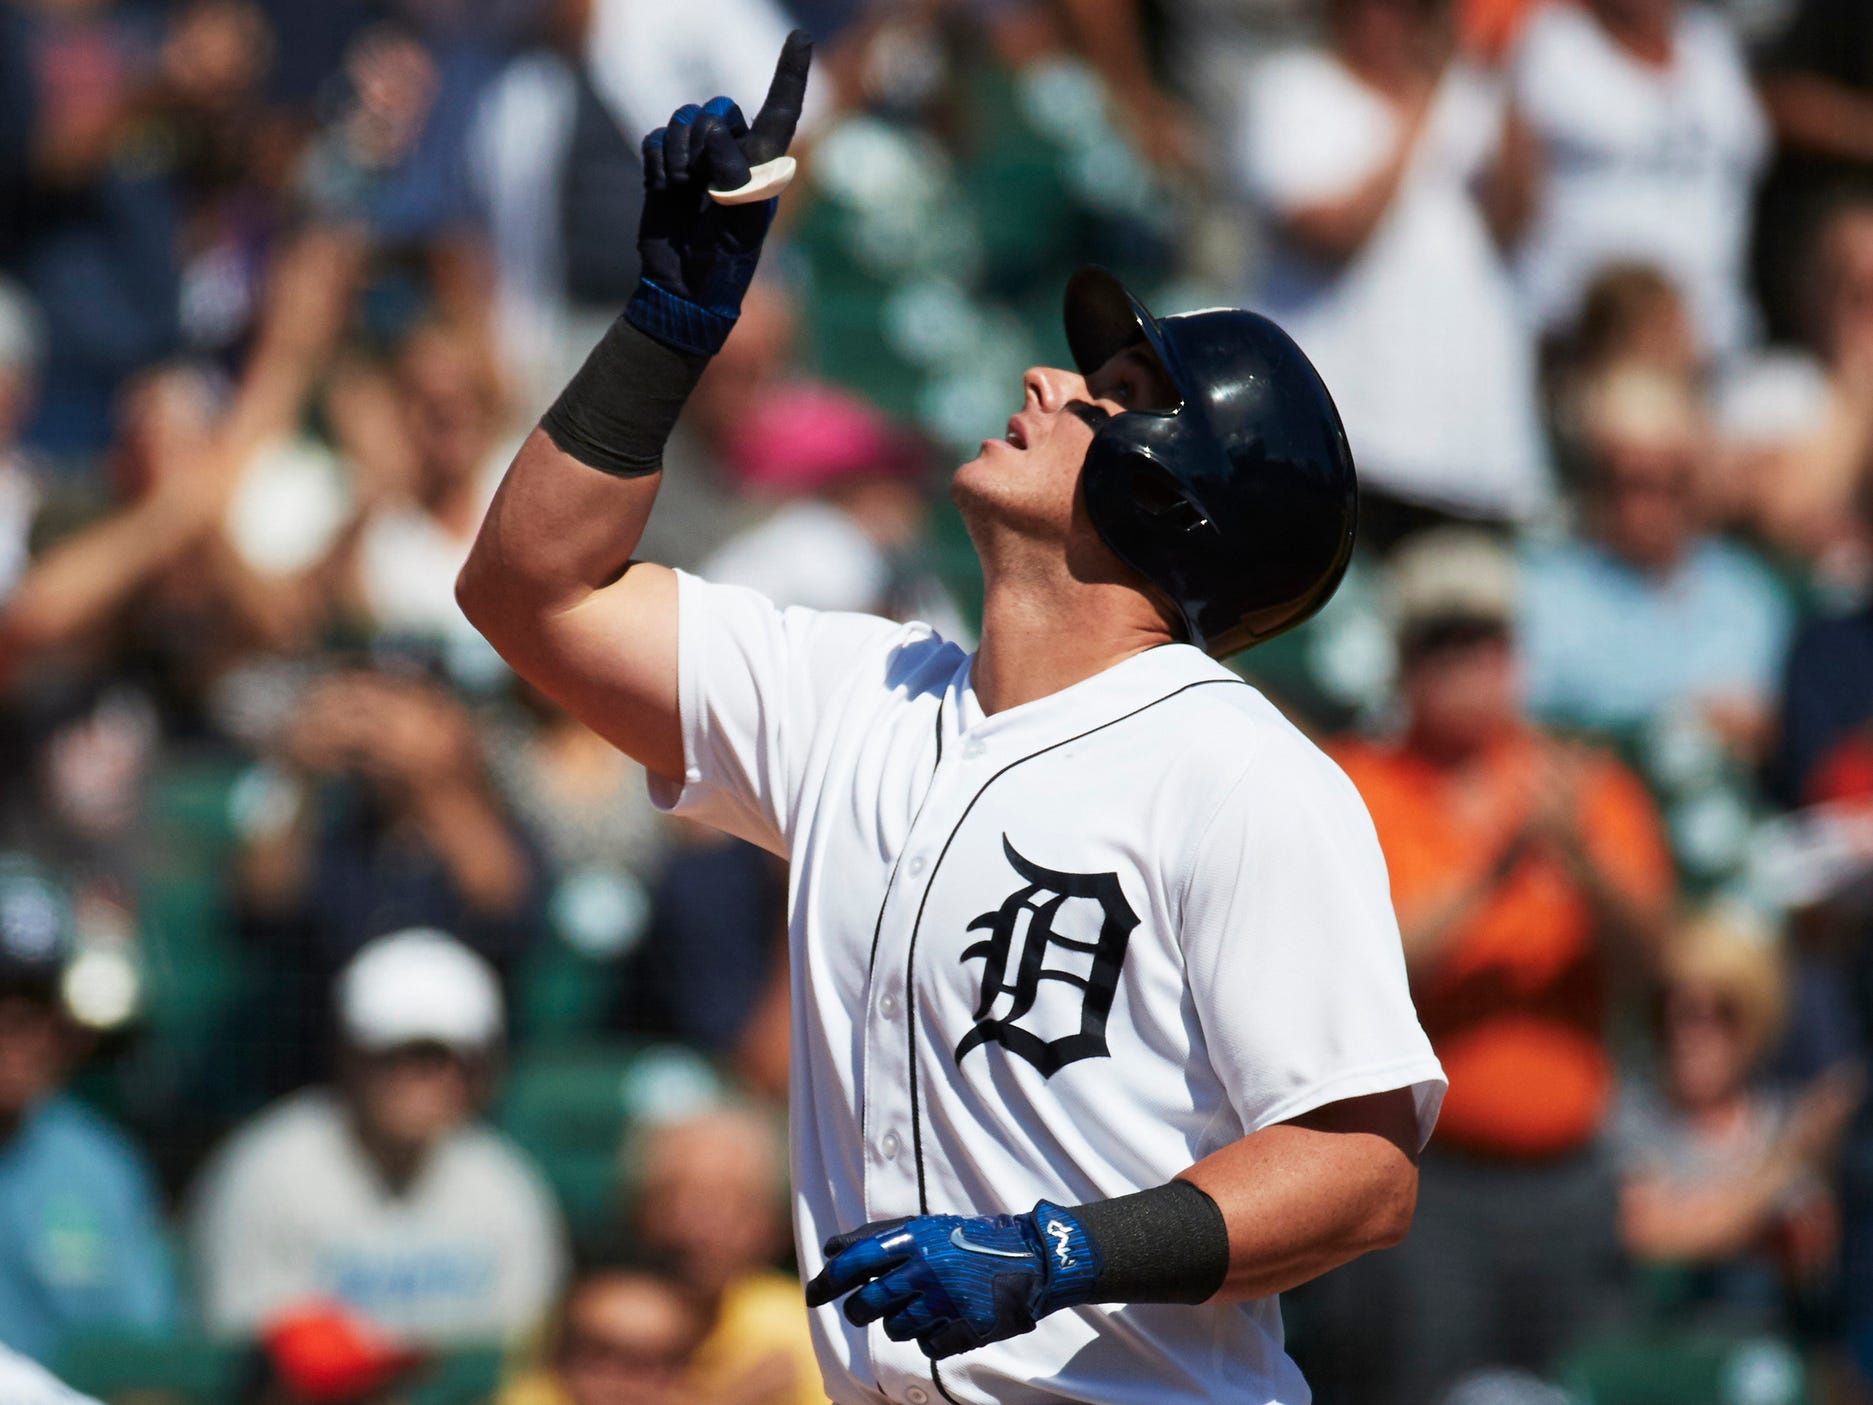 Tigers catcher James McCann celebrates after hitting a home run in the fourth inning of the Tigers' 5-4 loss to the Astros on Wednesday, Sept. 12, 2018, at Comerica Park.